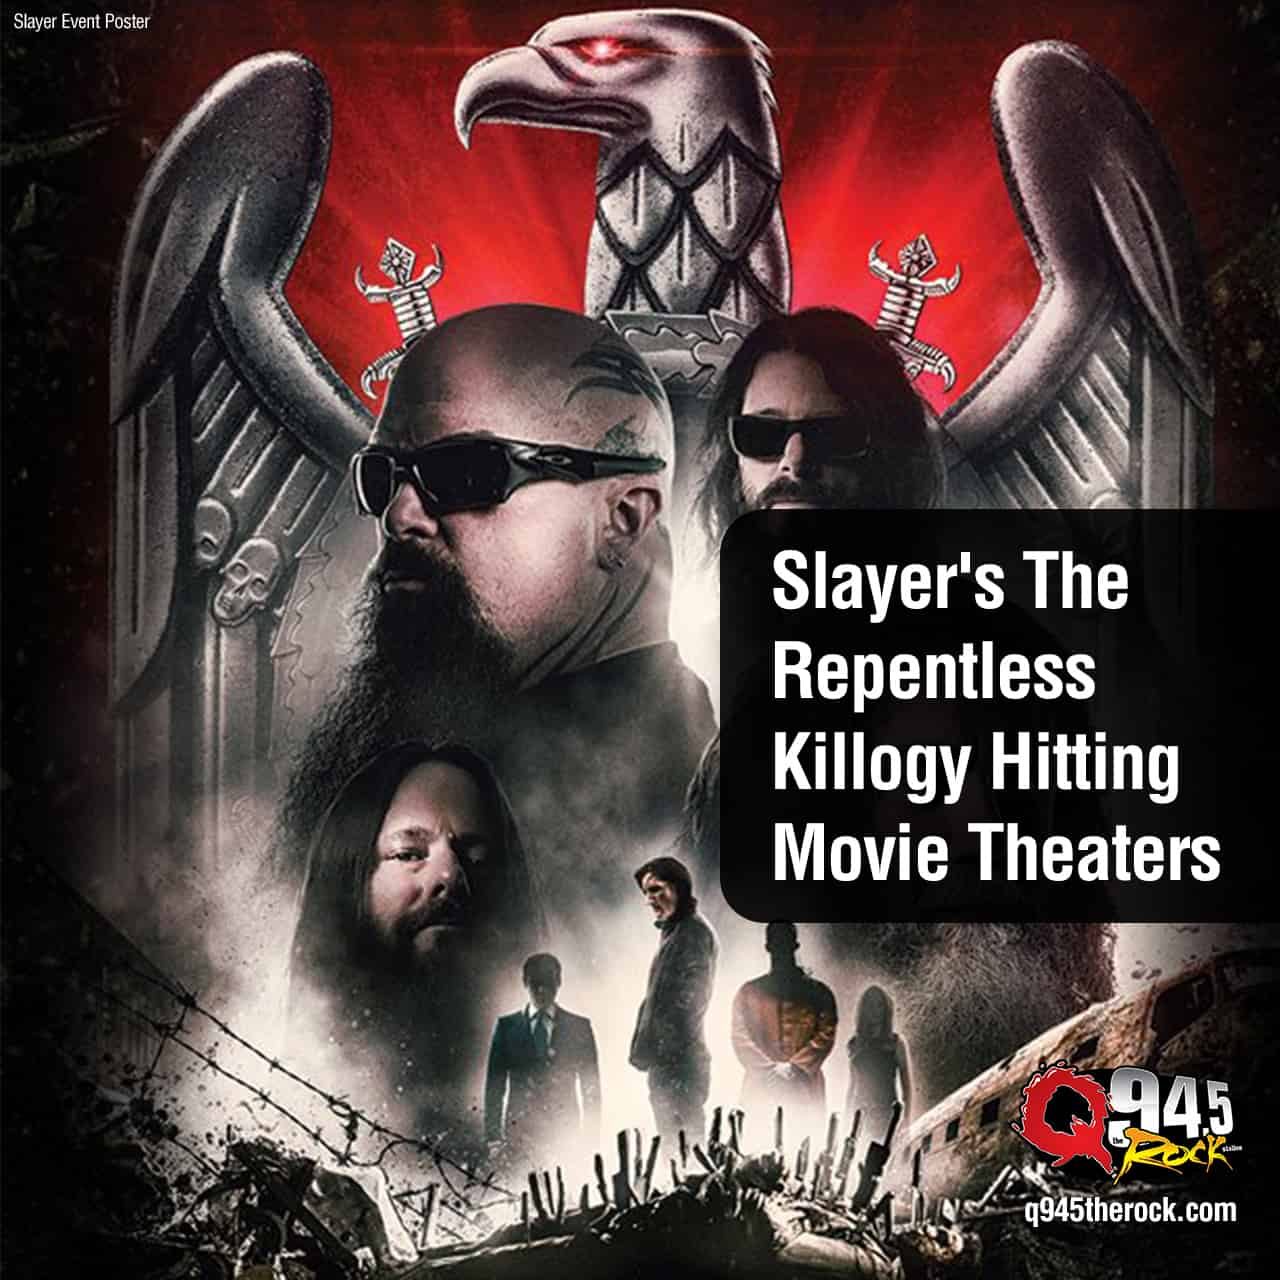 Slayer's The Repentless Killogy Hitting Movie Theaters